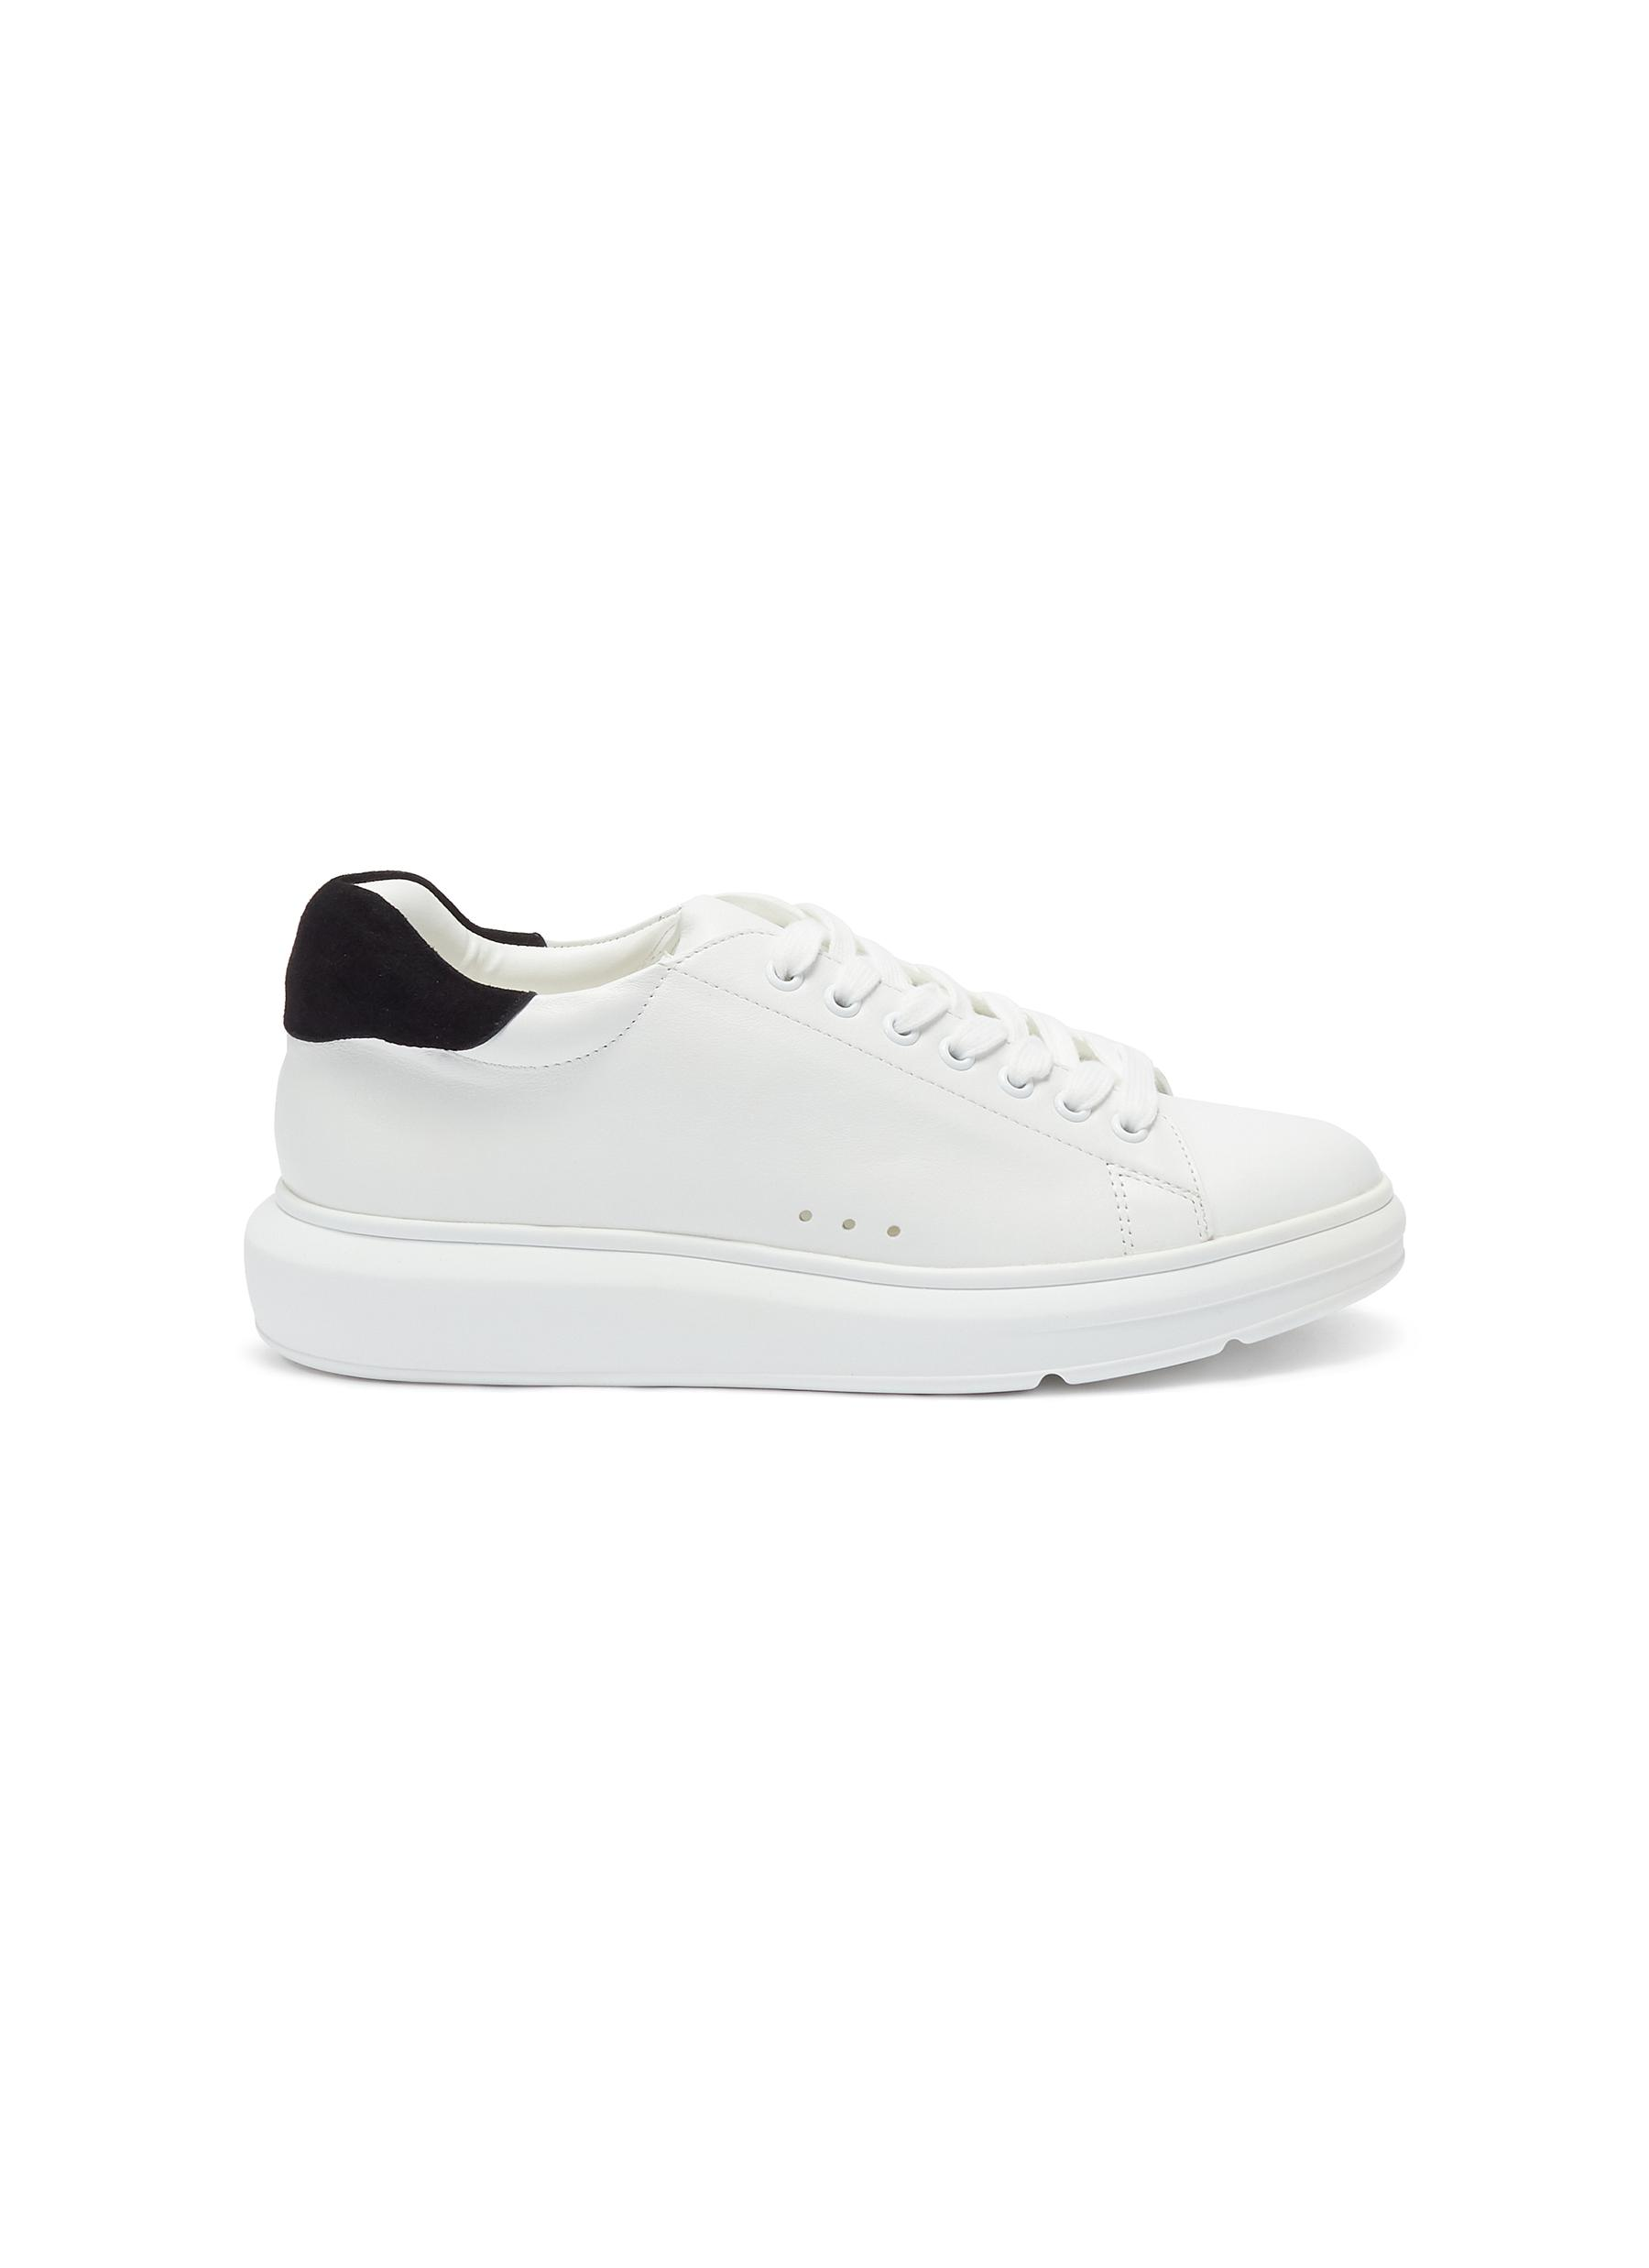 Margot chunky outsole leather sneakers by Pedder Red